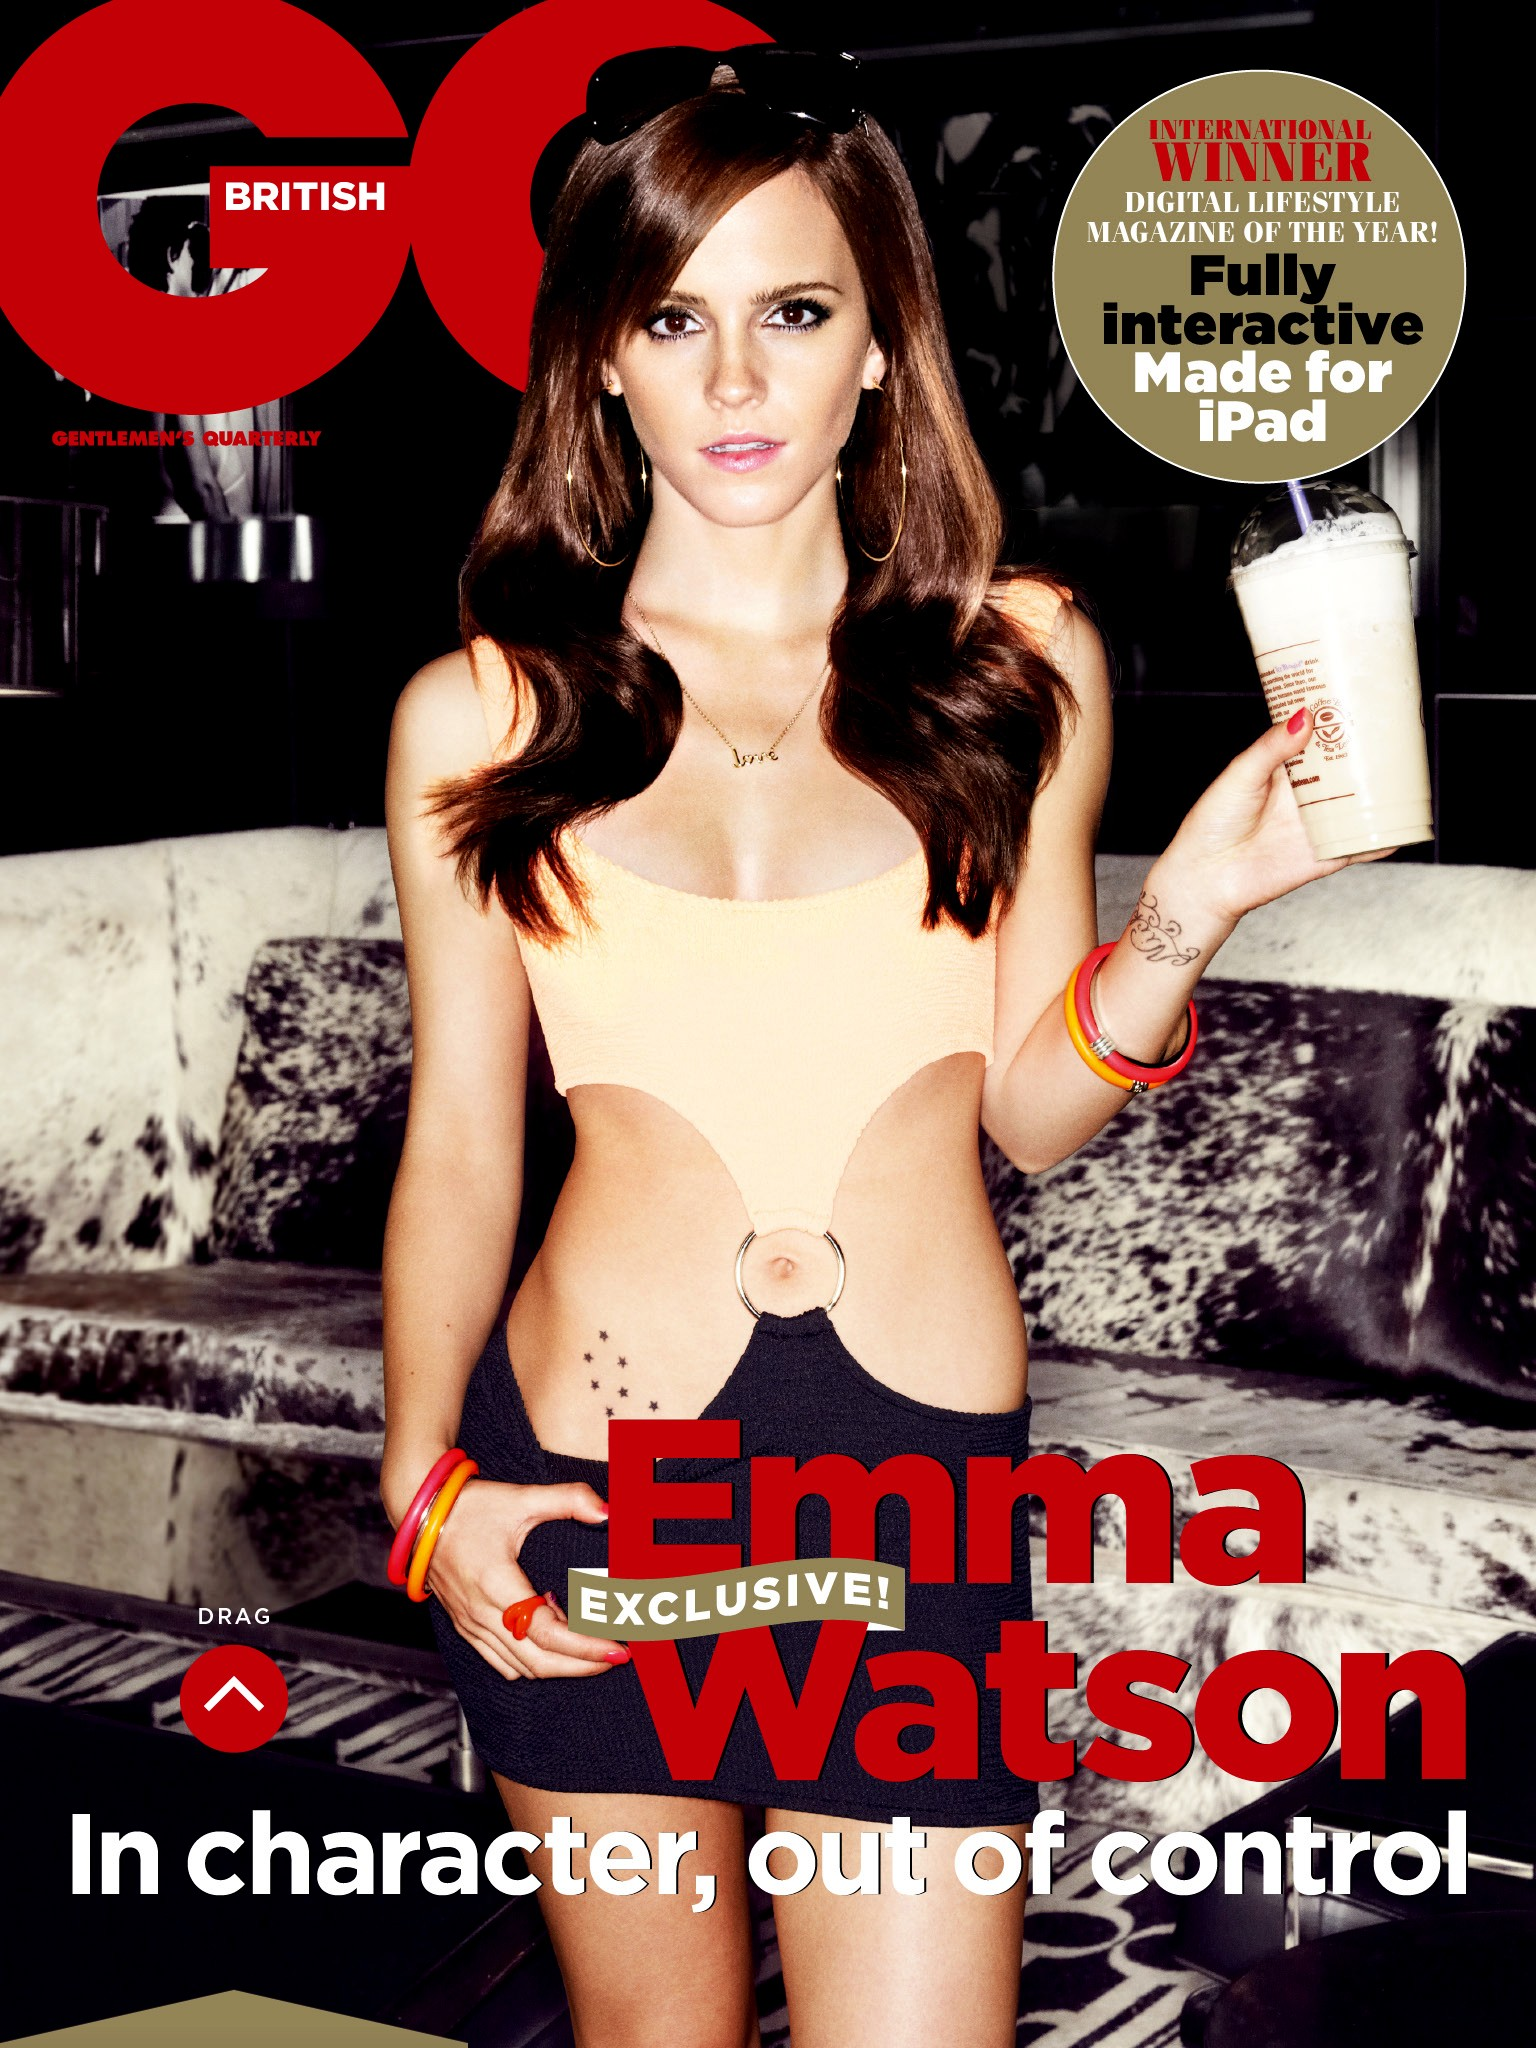 fashion_scans_remastered_emma_watson_gq_uk_may_2013_scanned_by_vampirehorde_hq_1.jpg